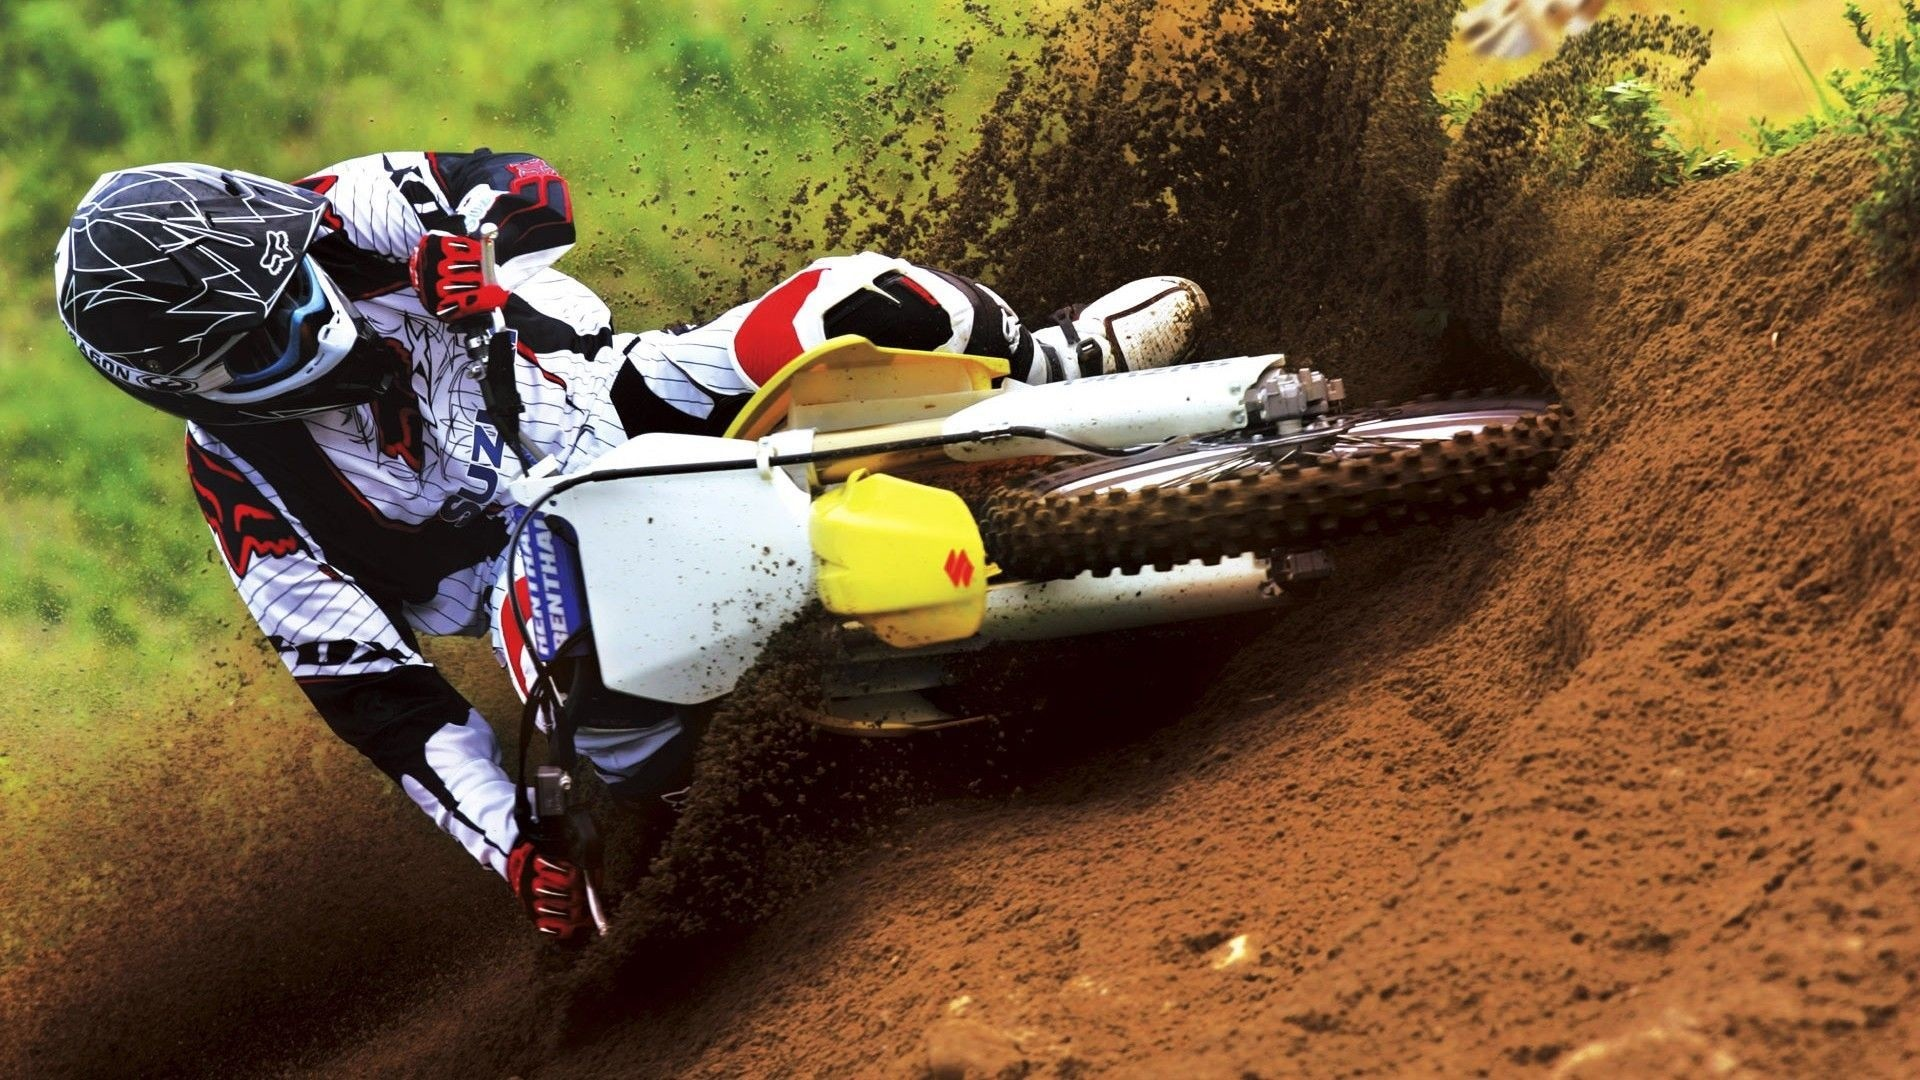 Dirt Bike Download Wallpaper